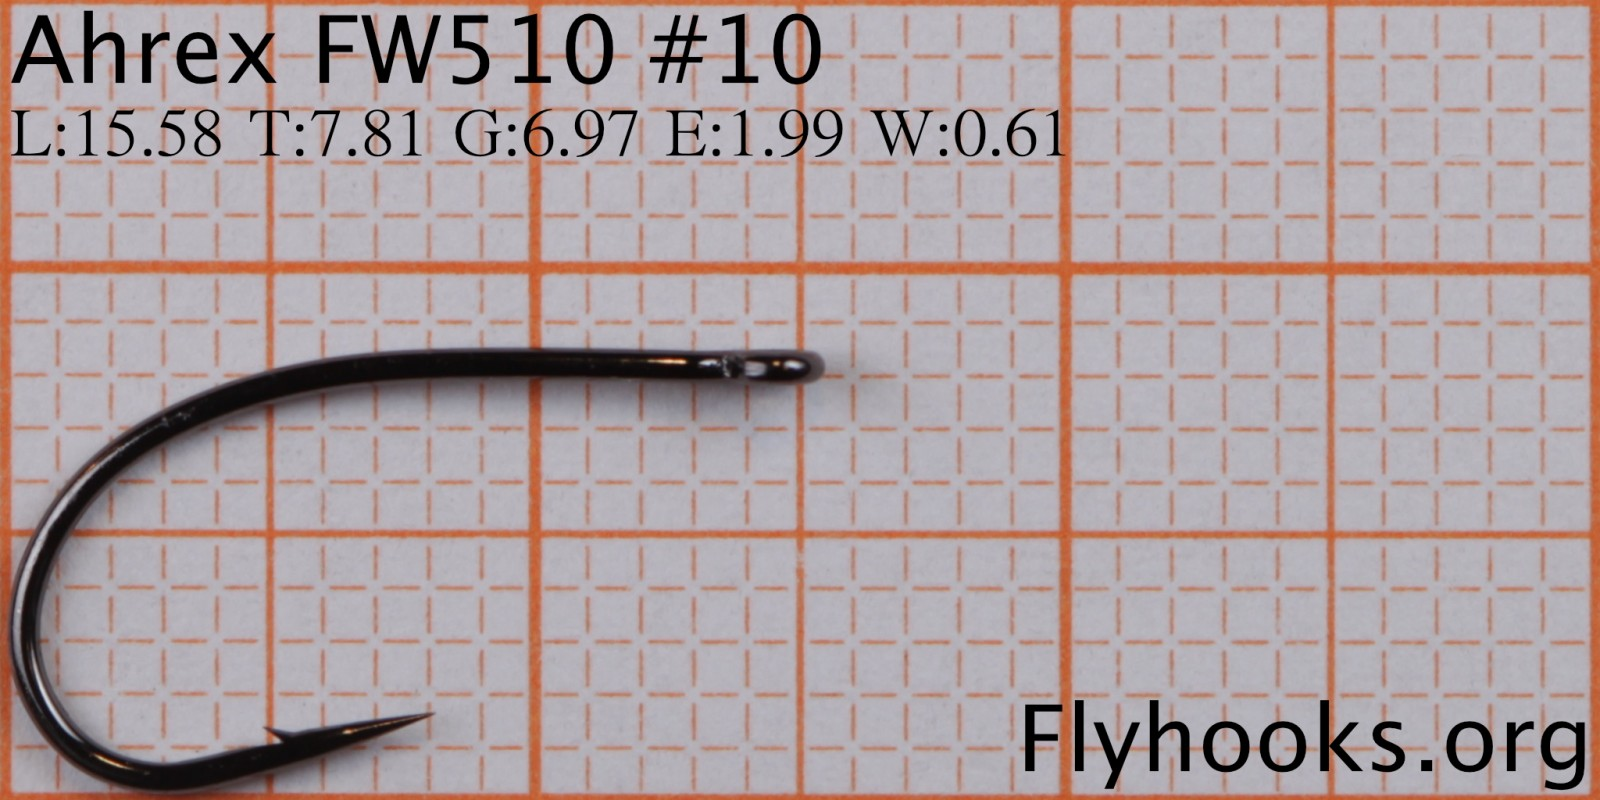 FW 510 - Curved Dry